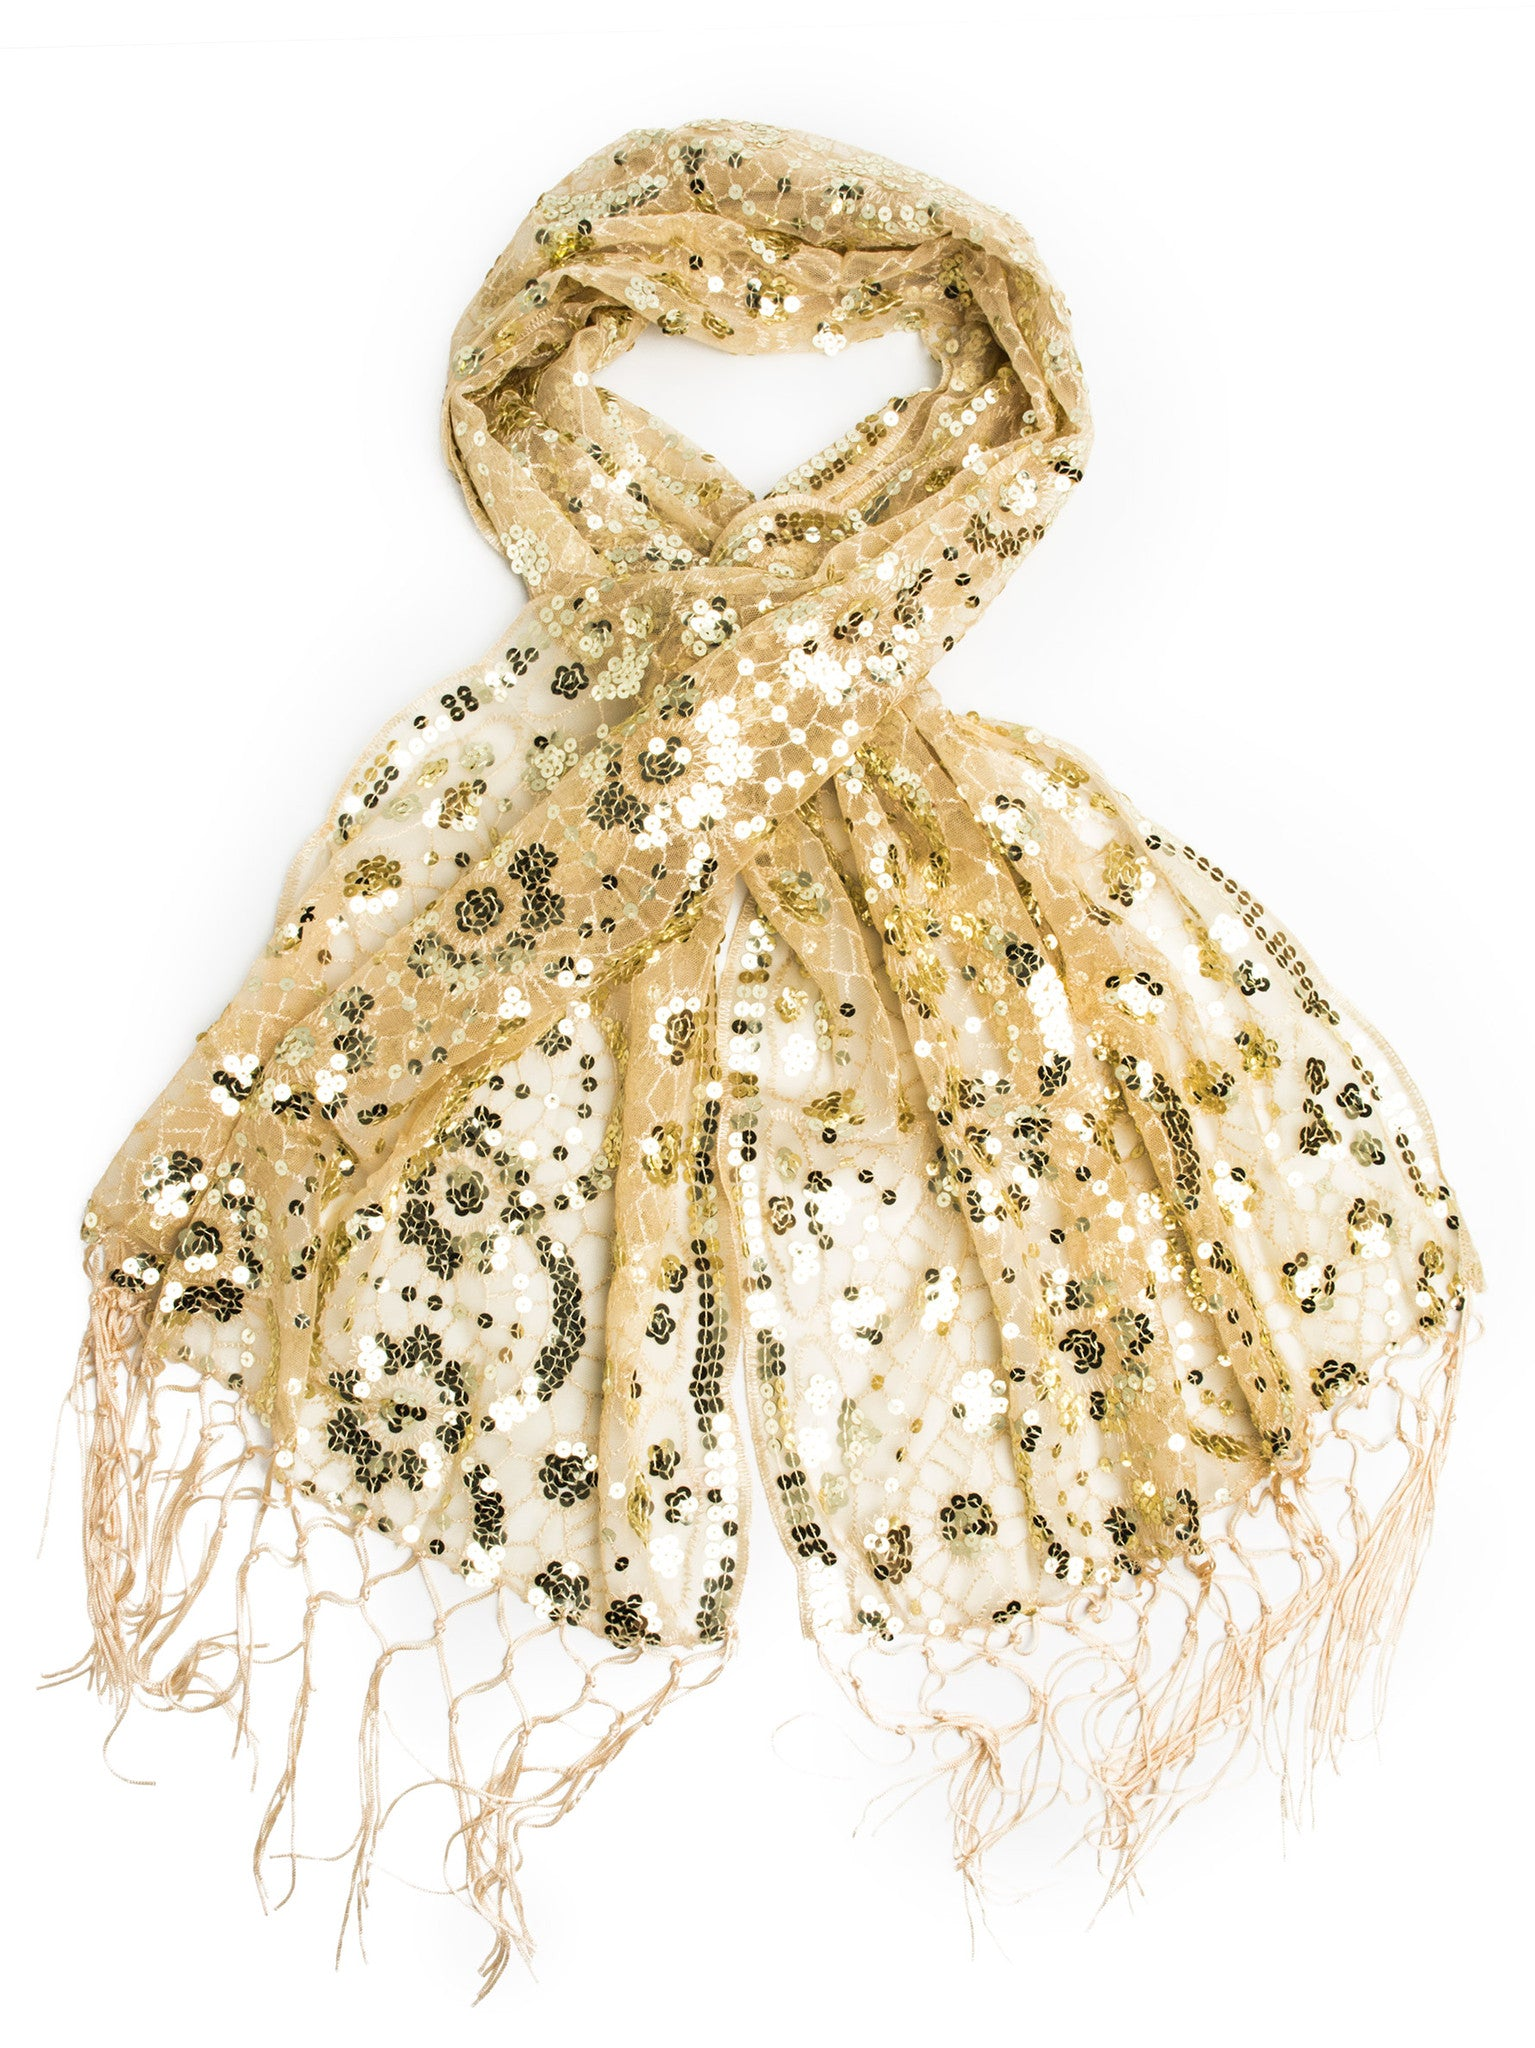 Scarves - Vera, Vintage Inspired Sequin Shawl, Evening Wrap, Embroidered Sequin Fringe Shawl or Scarf -(Gold/Gold) Bohomonde  - 5